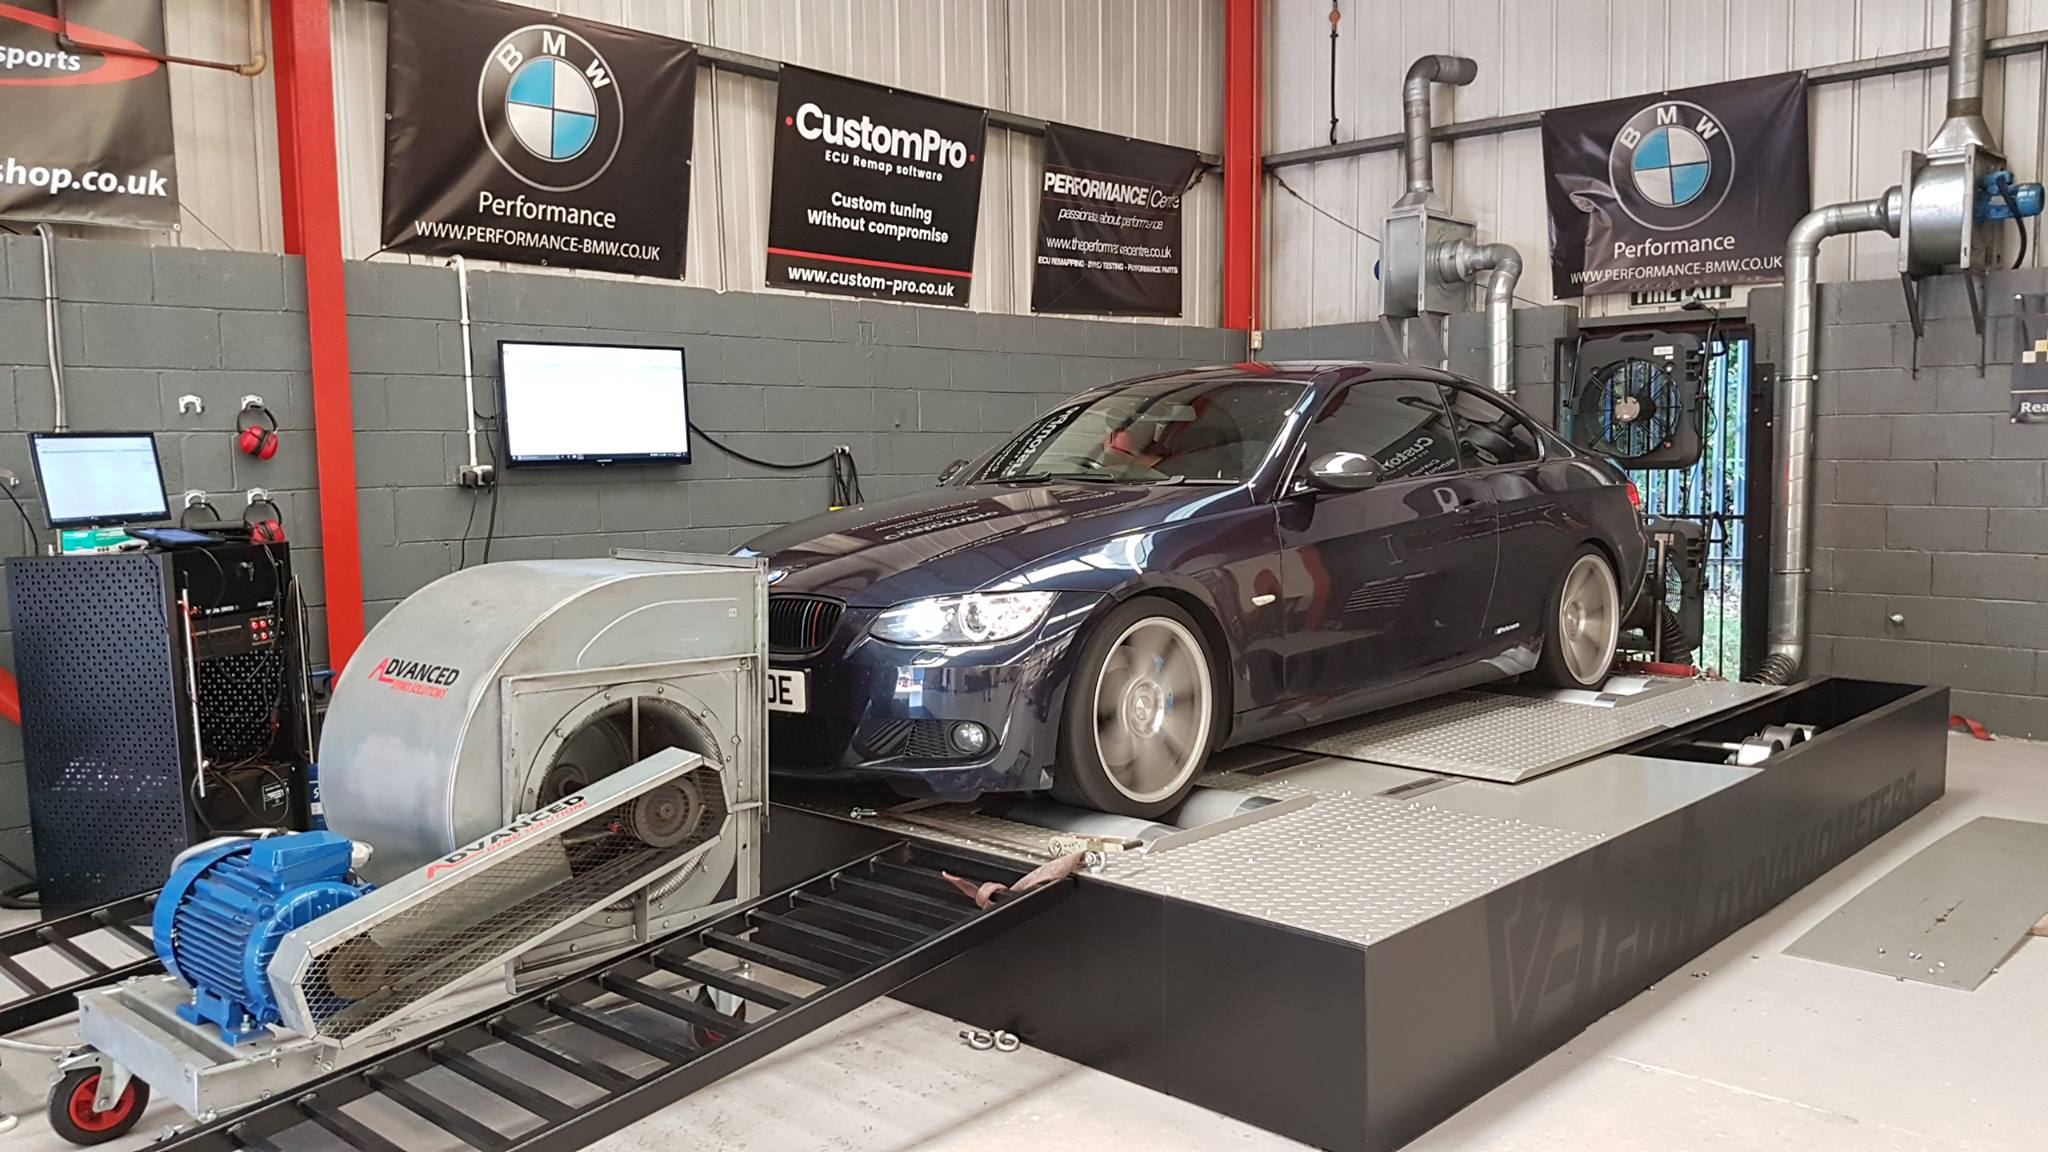 BMW 335d - CustomPro remap